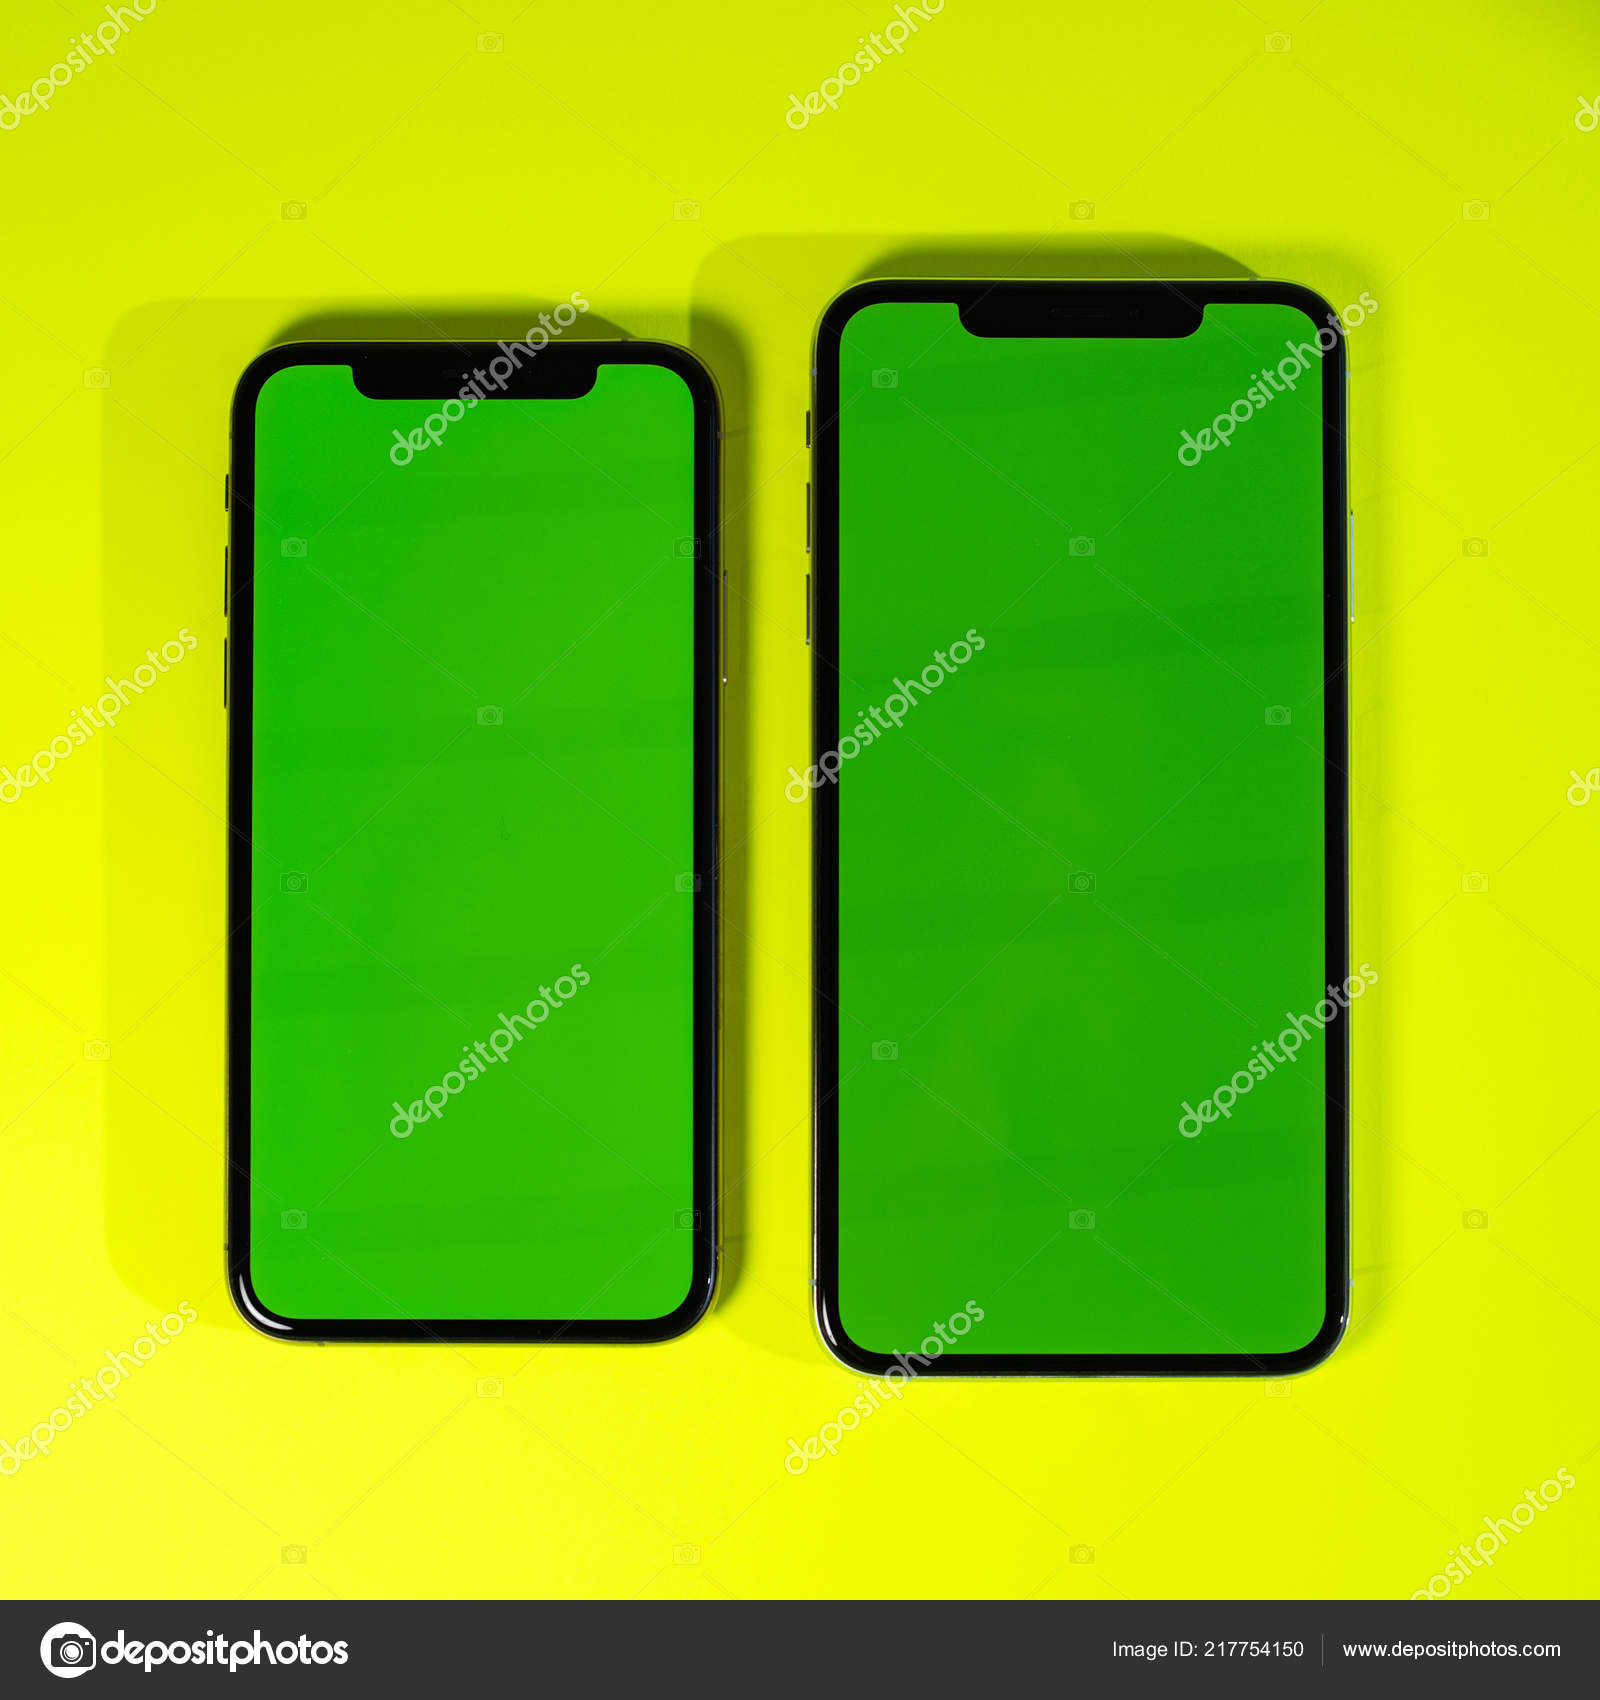 newest 853d8 bcdf7 Apple iPhone Xs Max green chroma key green background – Stock ...